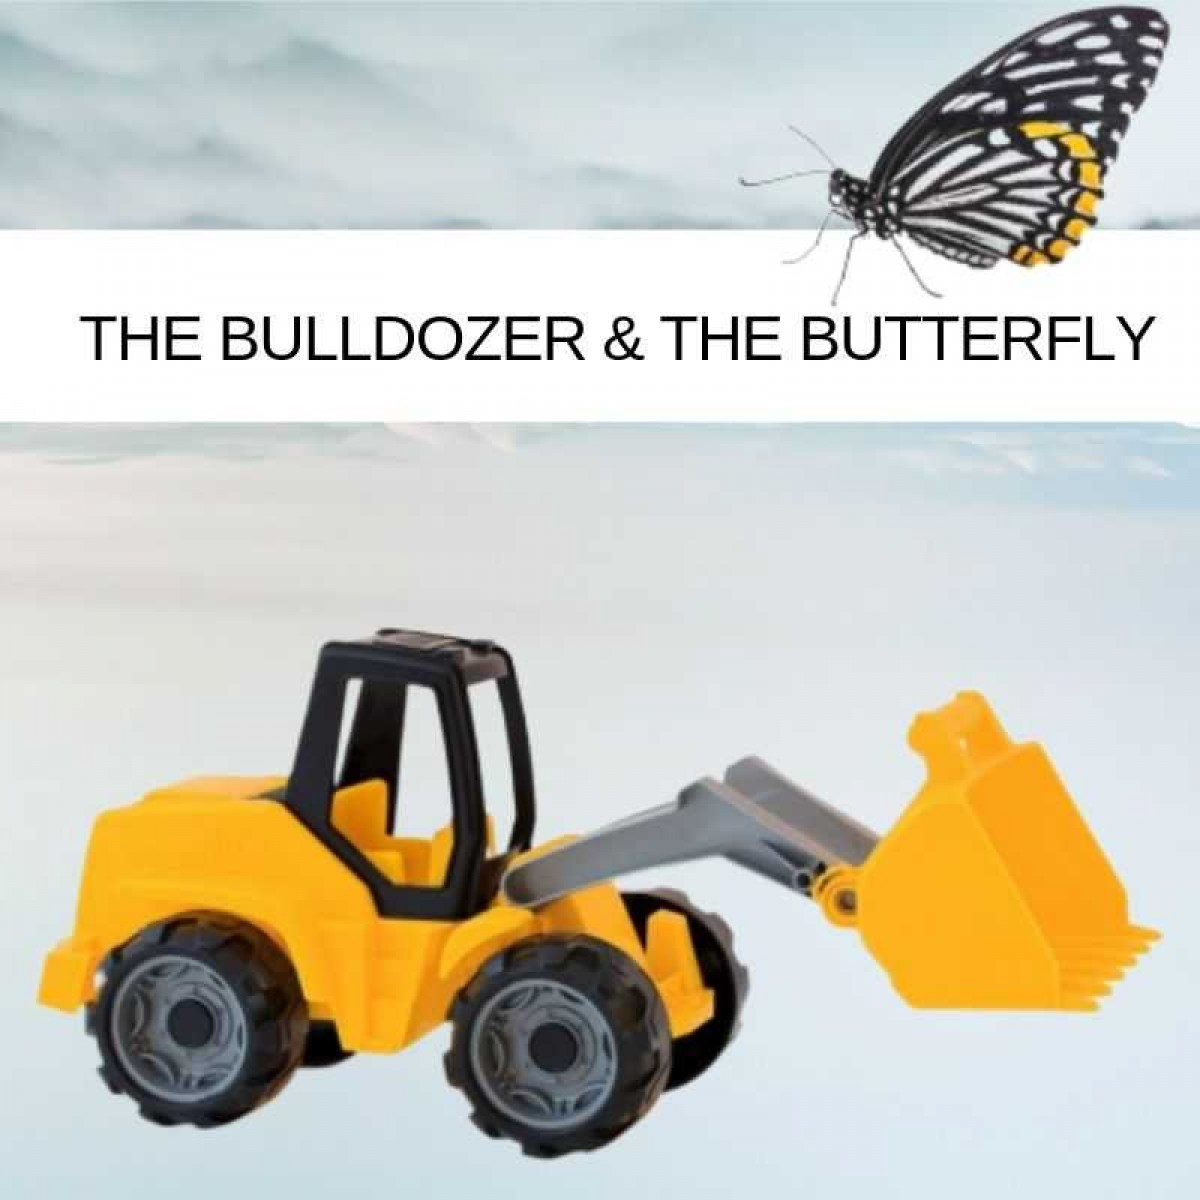 The bulldozer and the butterfly: How to transition a